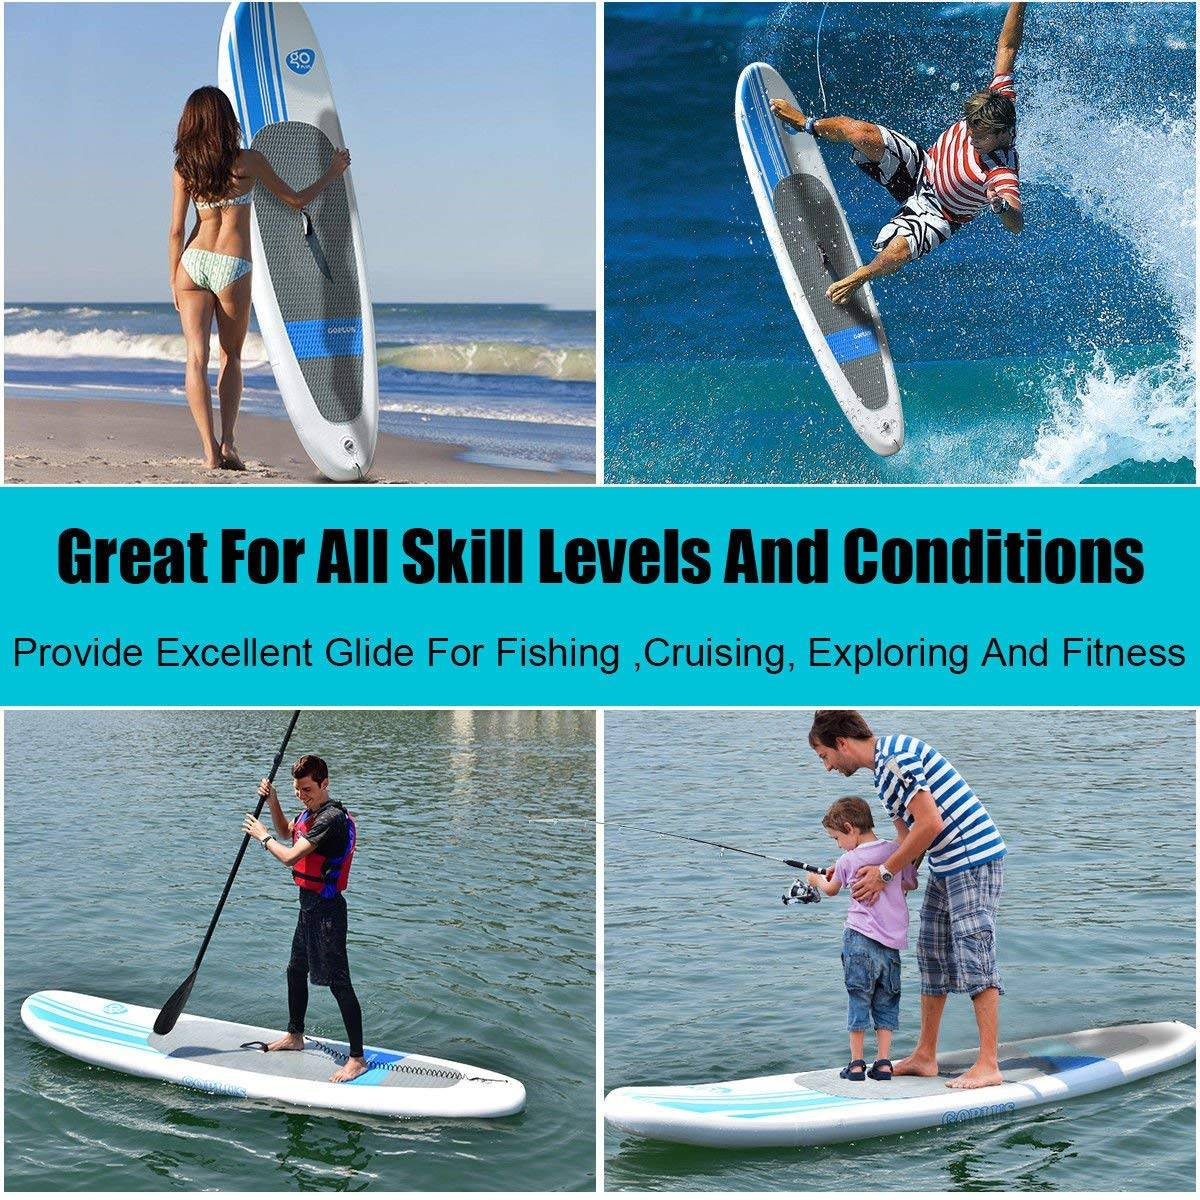 Goplus 10' Inflatable Stand Up Paddle Board 2